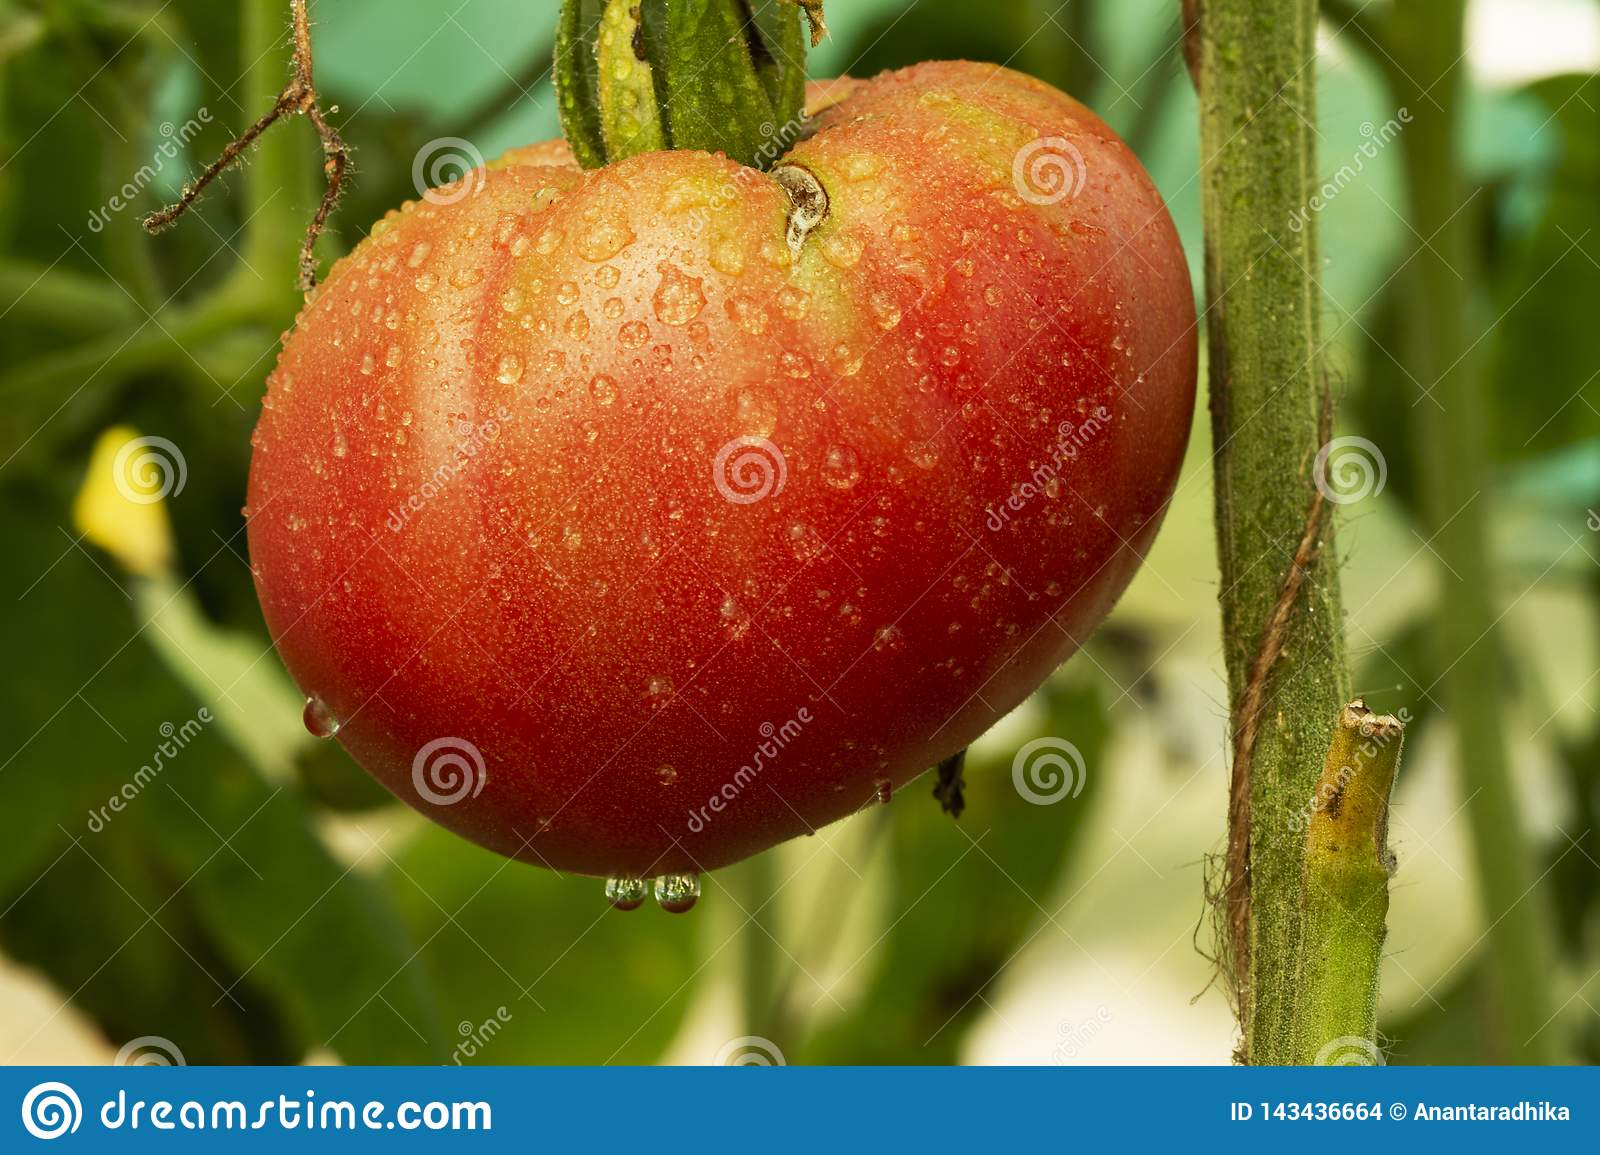 Ripe natural red tomato ready for harvest grows on a branch in a greenhouseShallow depth of field. large organic tomato